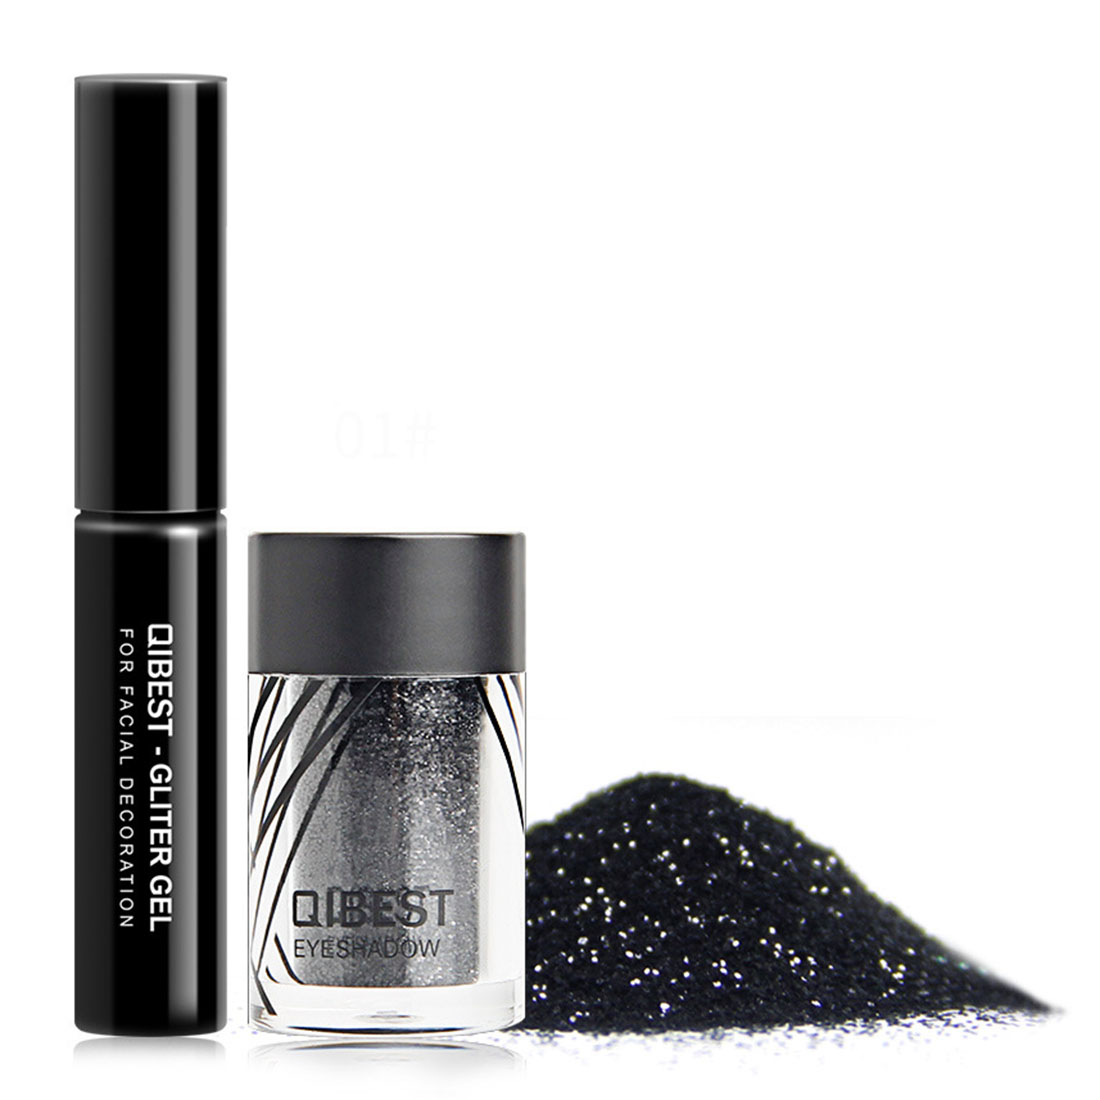 Beauty Essentials Have An Inquiring Mind Qibest Shimmer Glitter Powder Eye Shadow Face Eyes Lips Nails And Glue Waterproof Colorful Laser-makeup Brand Qibest #l18036 Elegant Shape